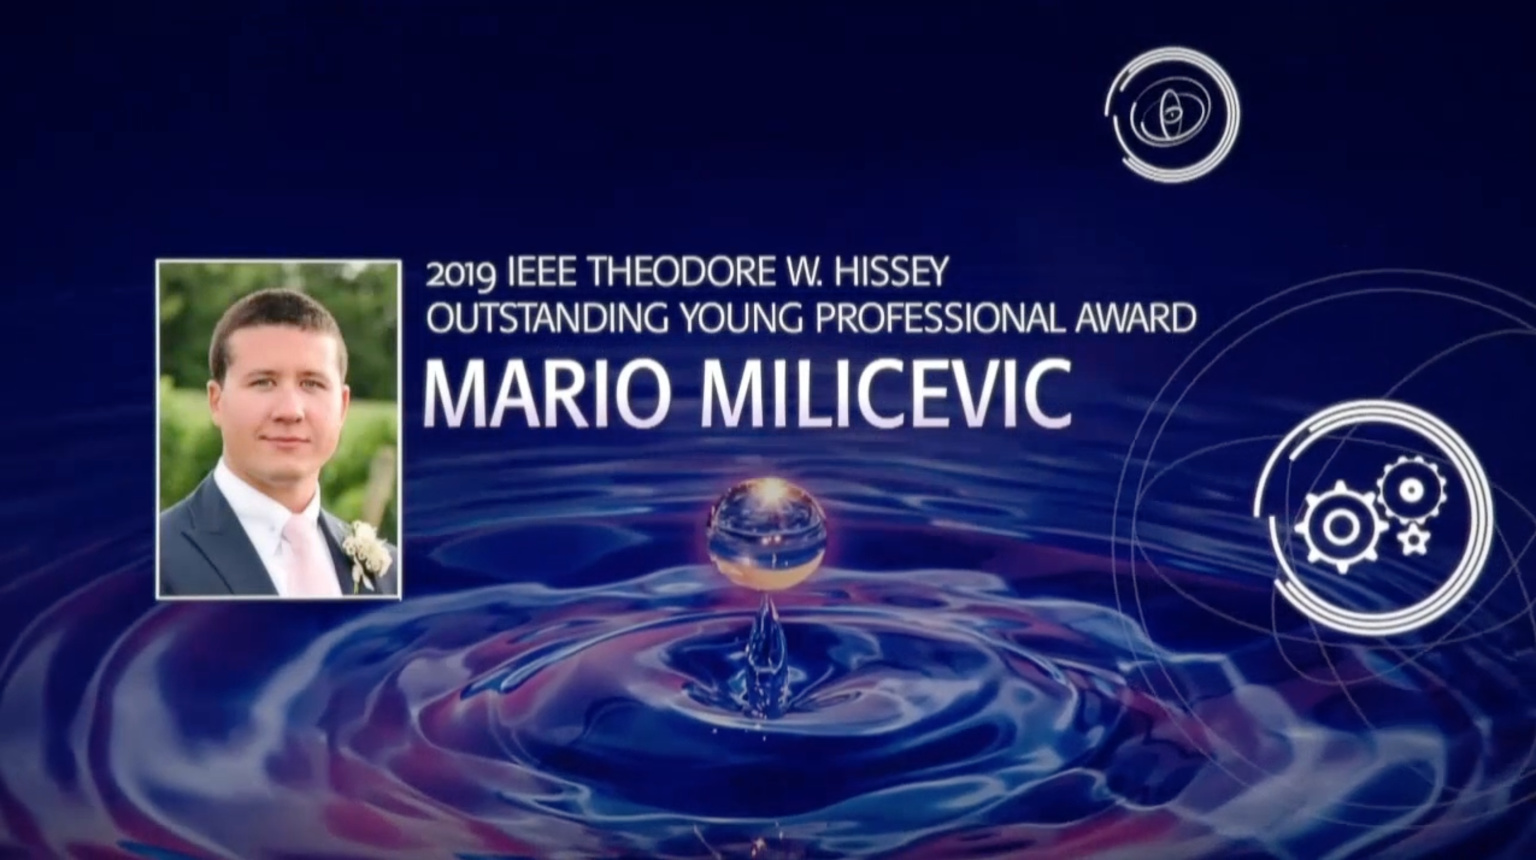 Mario Milicevic - IEEE Theodore W. Hissey Outstanding Young Professional Award, 2019 IEEE Honors Ceremony